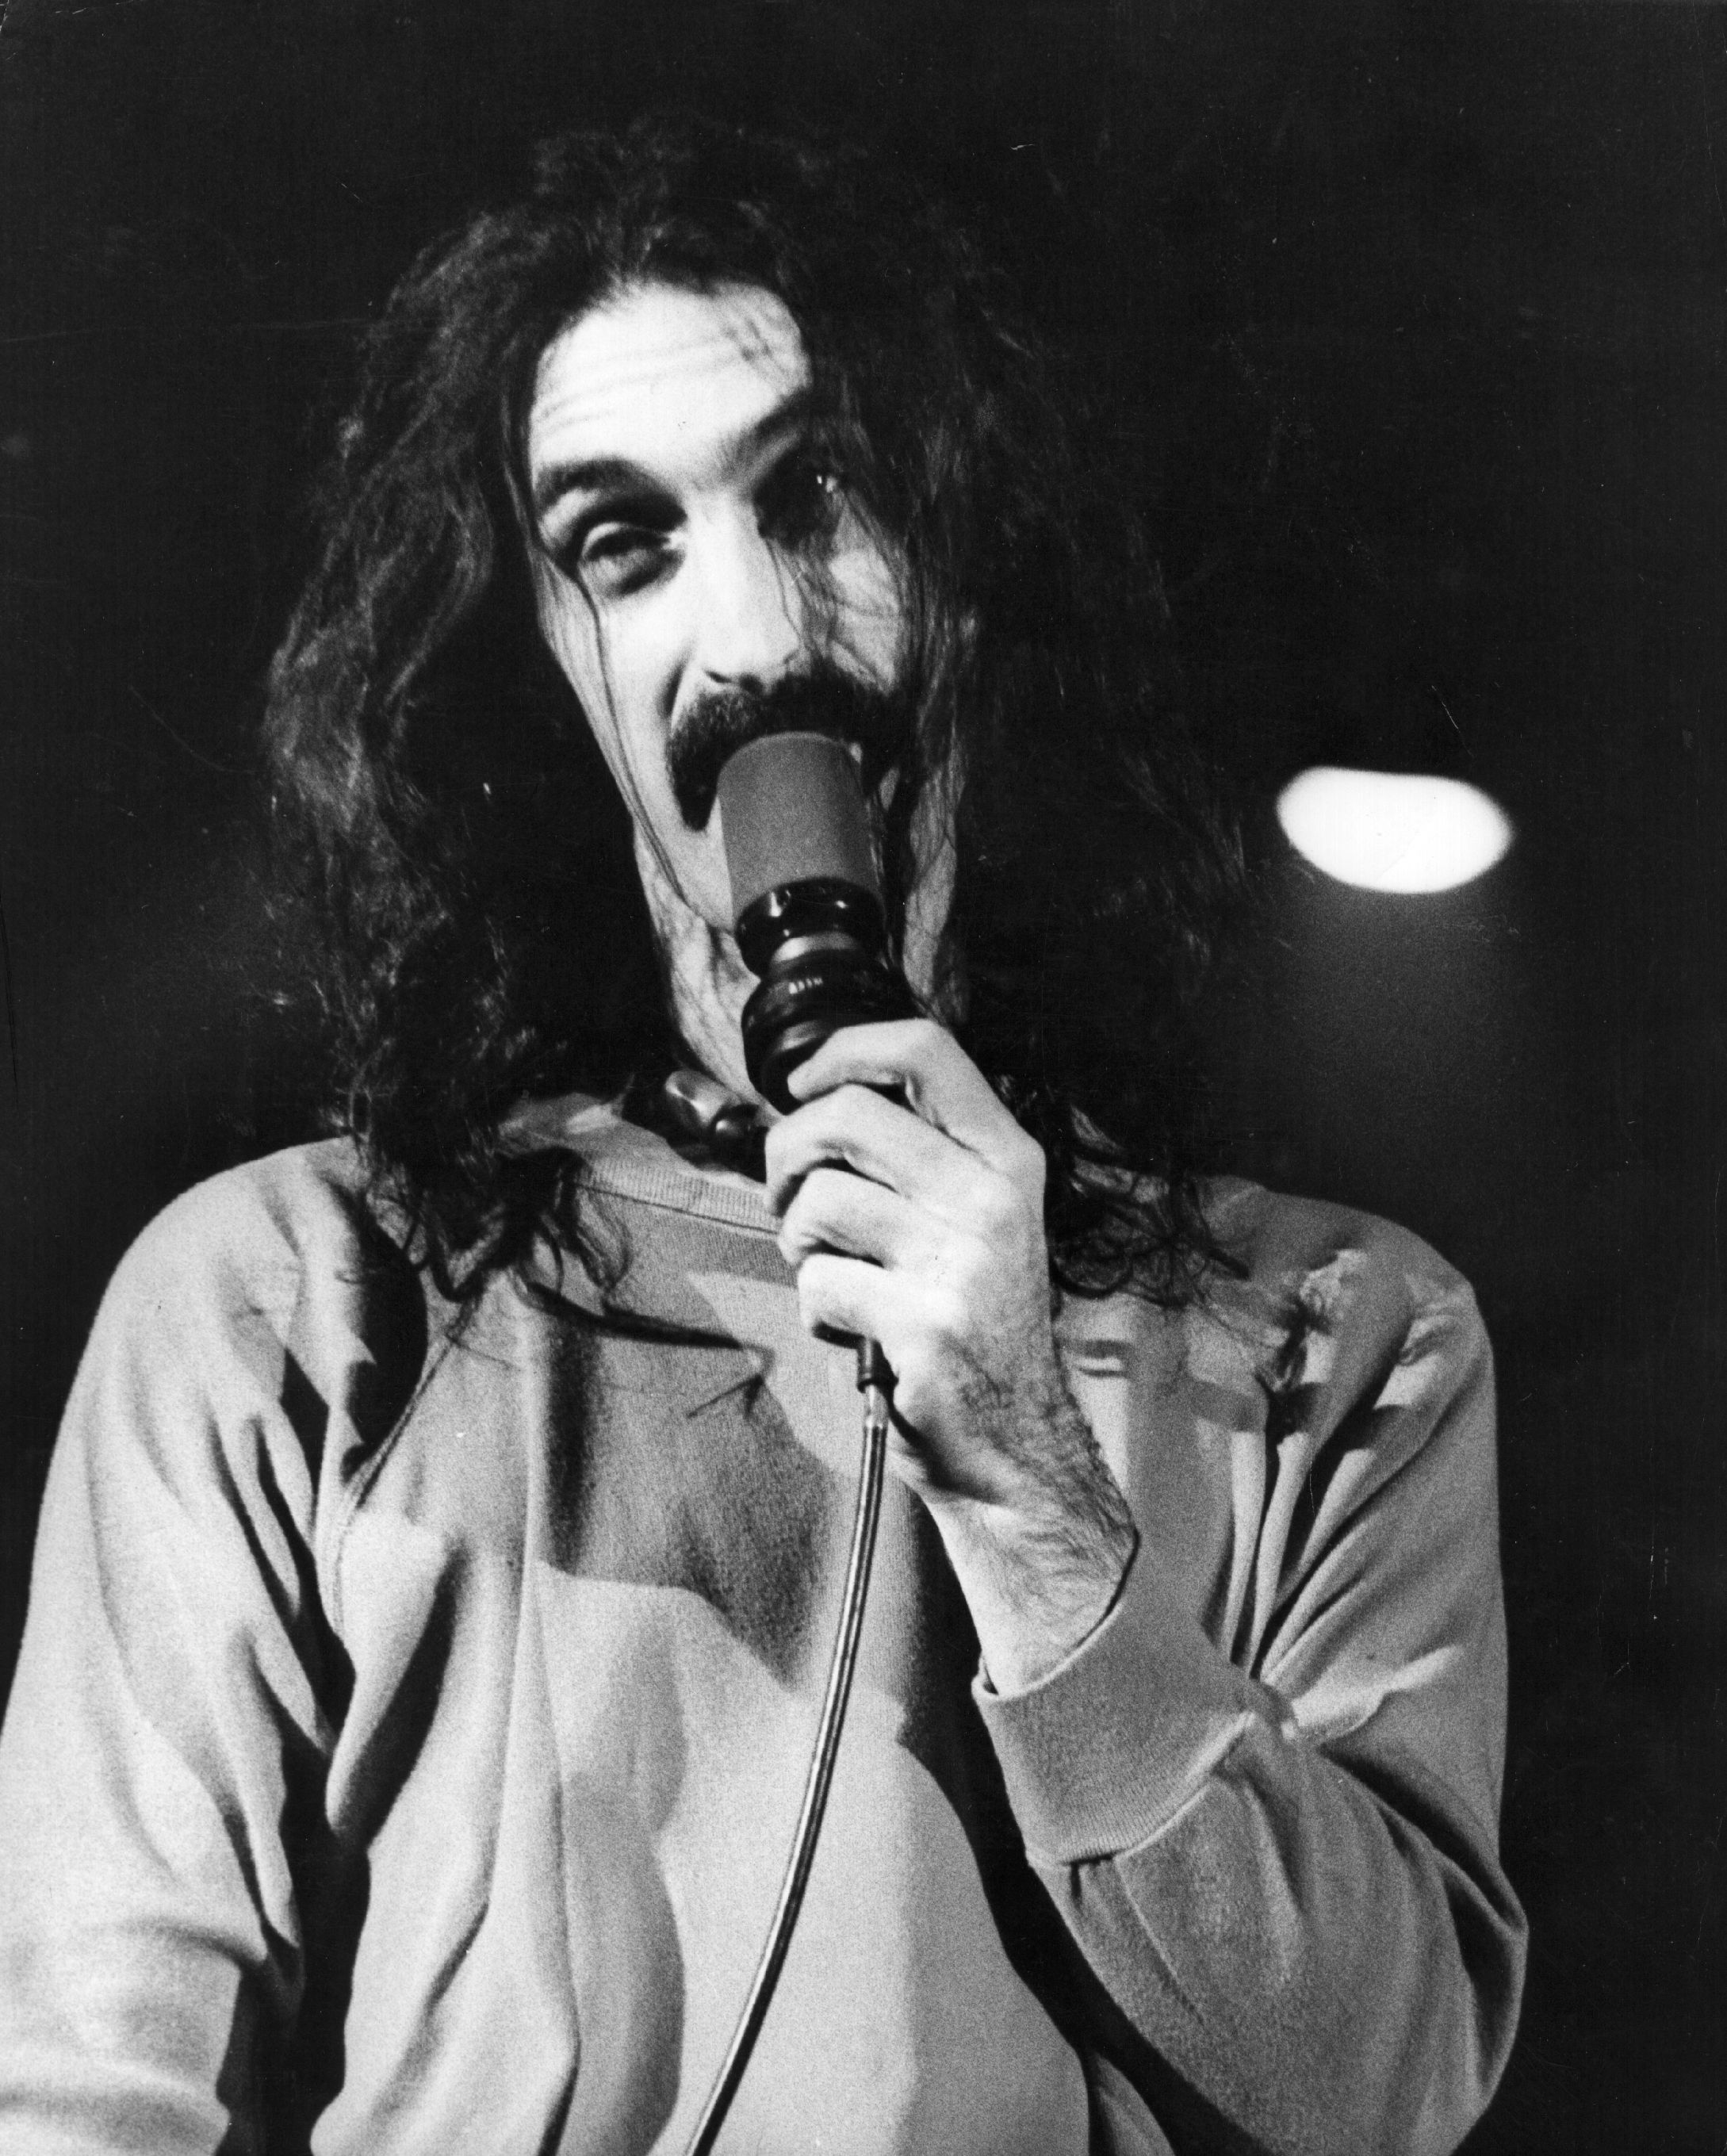 American experimental rock singer, songwriter, guitarist and composer Frank Zappa (1940 - 1993), on stage at the Hammersmith Odeon, London. (Source: Getty Images)